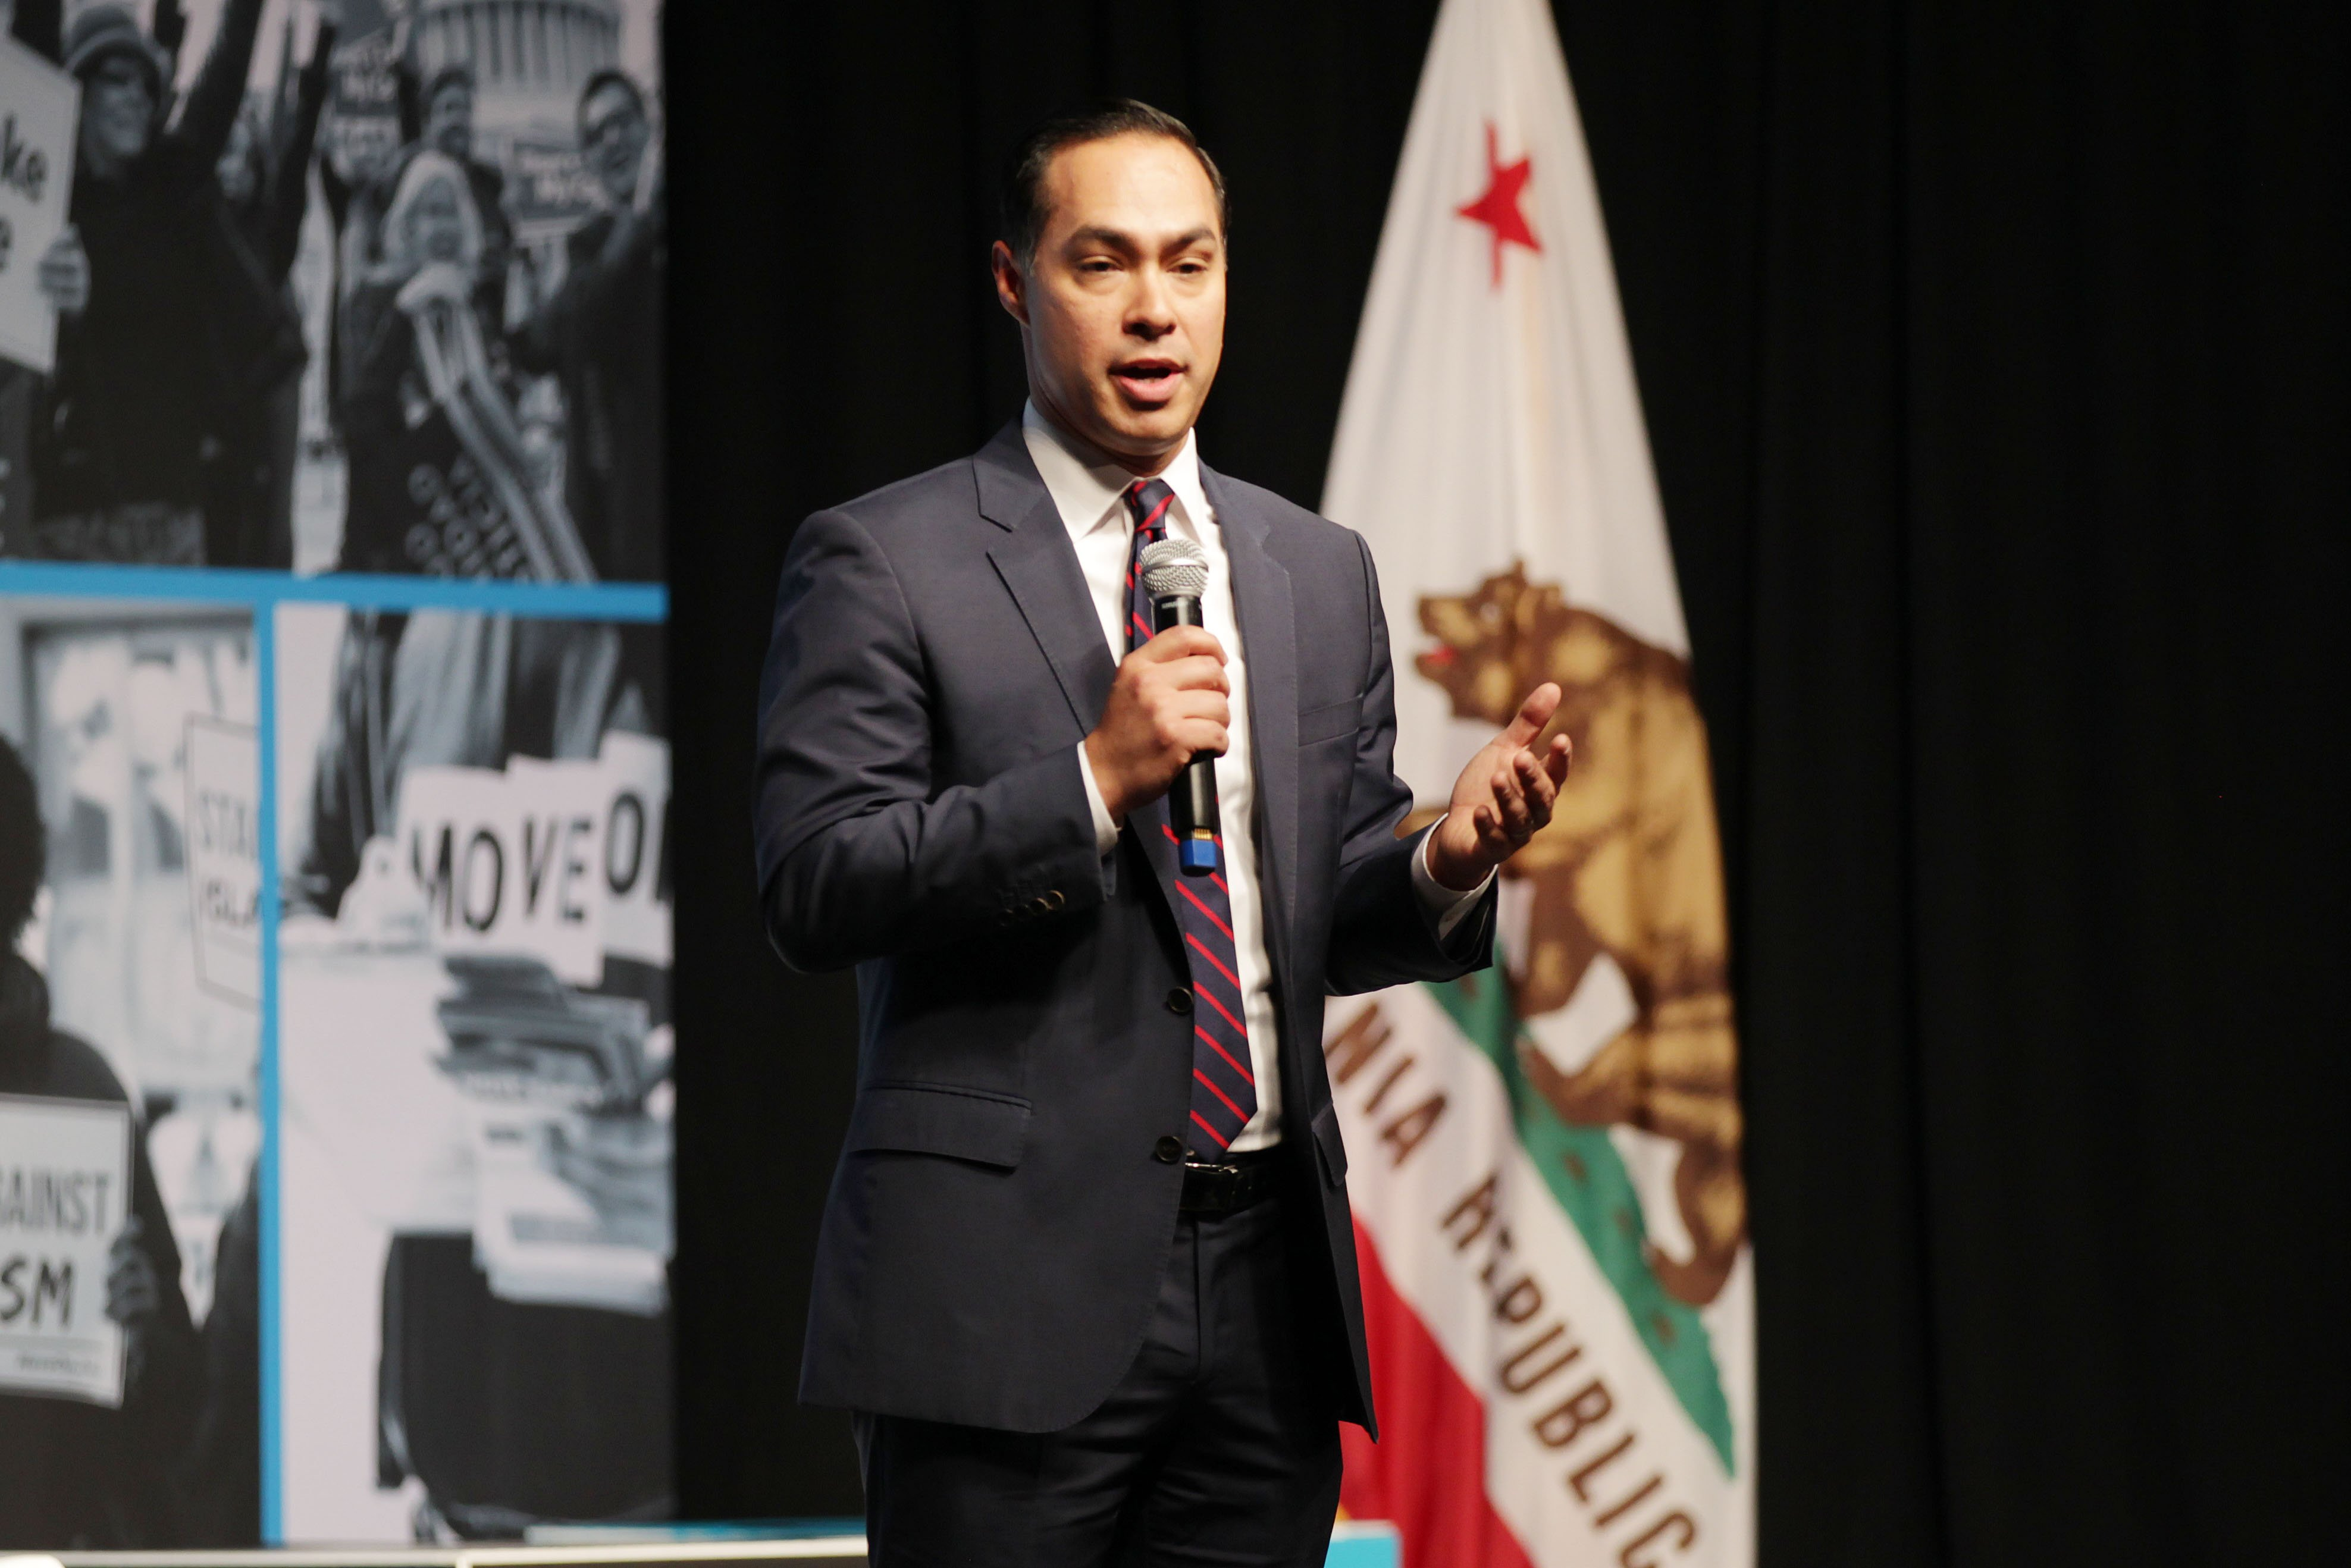 Julian Castro speaks onstage at the MoveOn Big Ideas Forum at The Warfield Theatre on June 01, 2019 in San Francisco, California. (Miikka Skaffari/Getty Images for MoveOn)